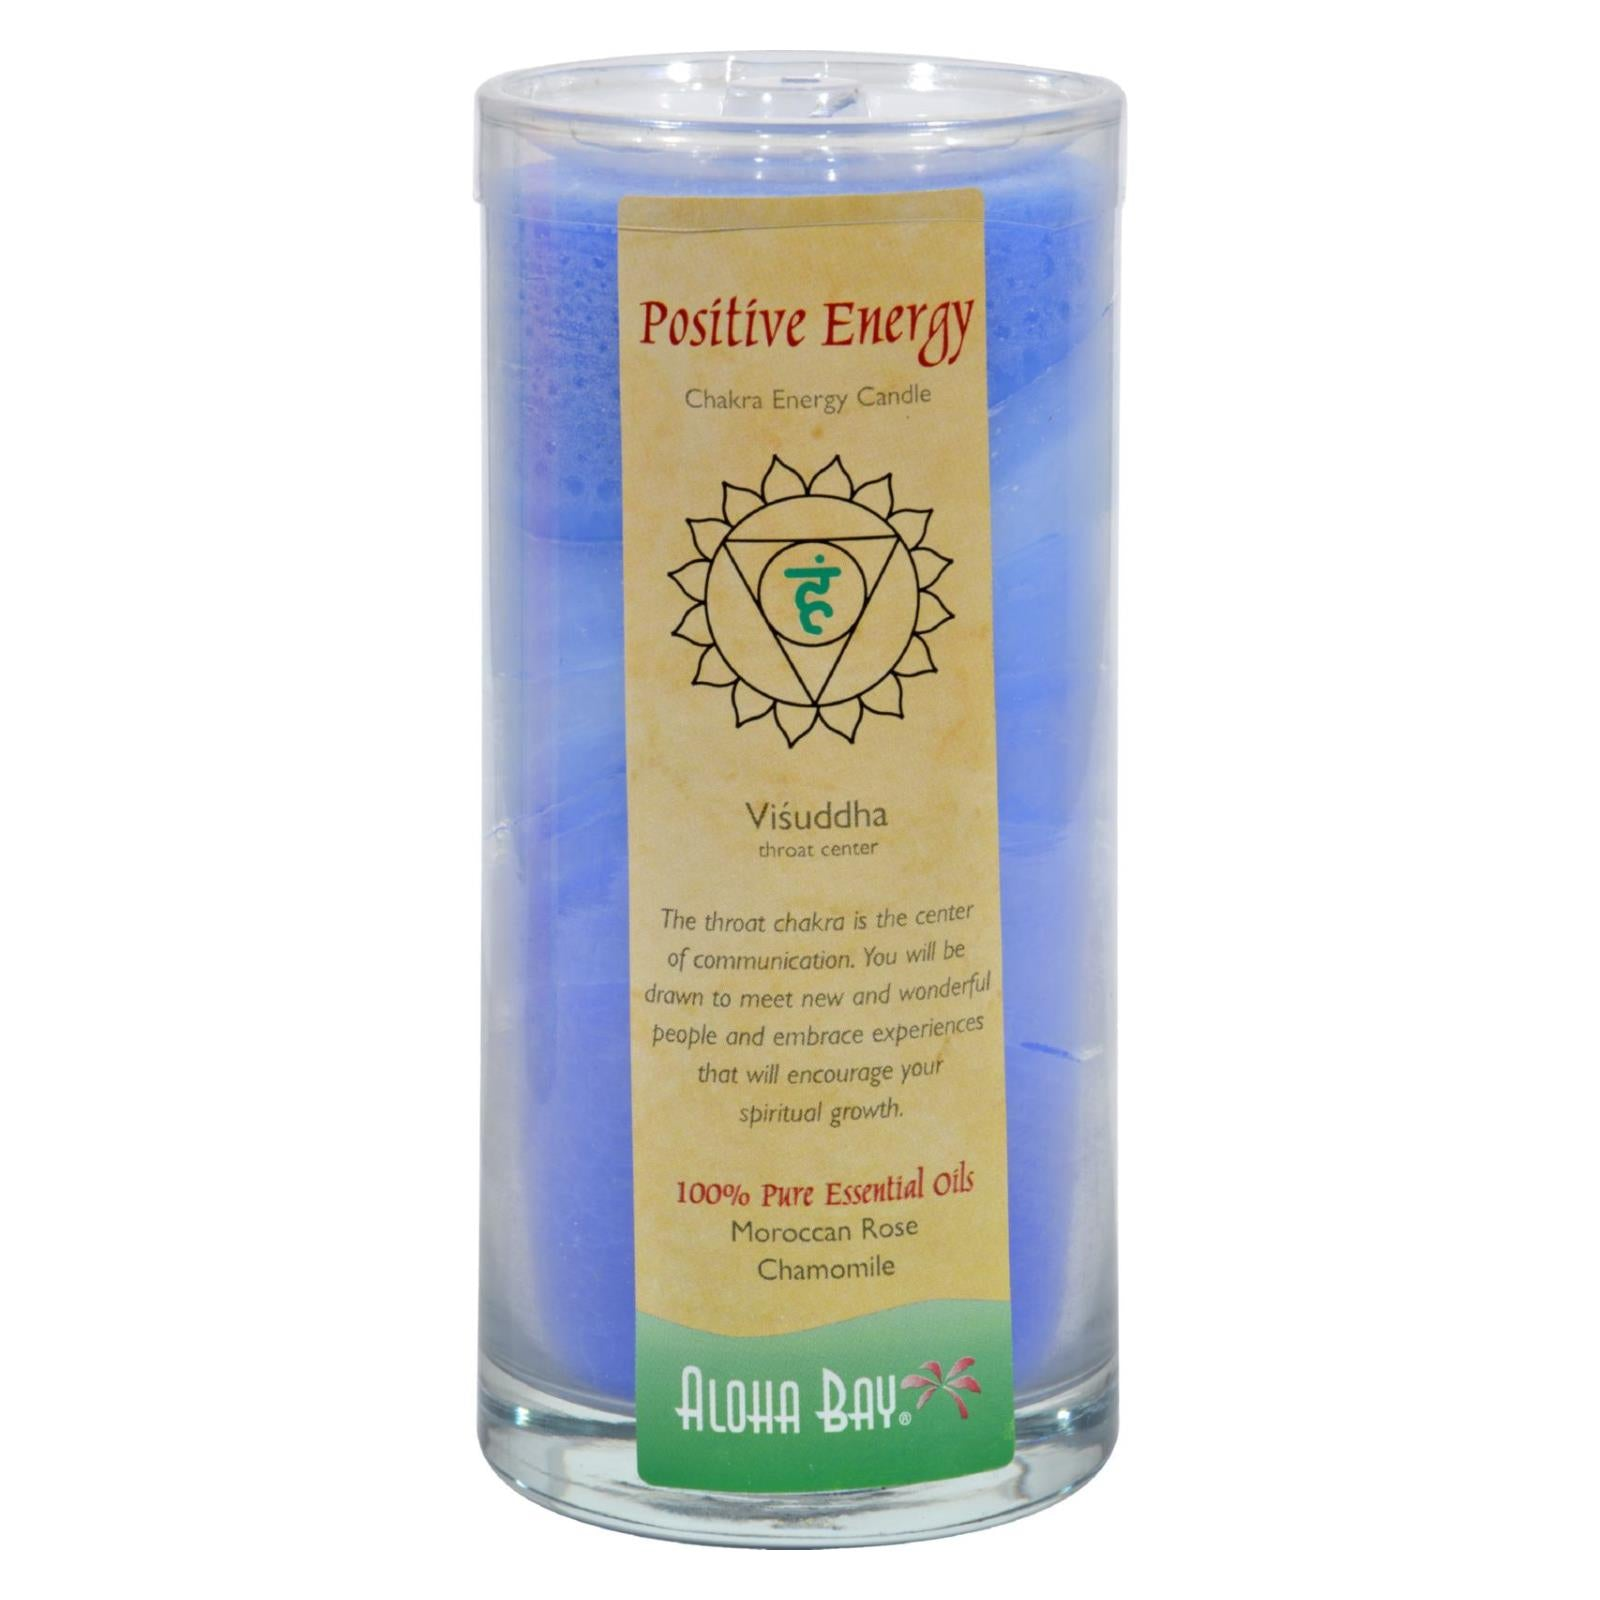 Buy Aloha Bay Chakra Candle Jar Positive Energy - 11 oz - Jar Candles from Veroeco.com